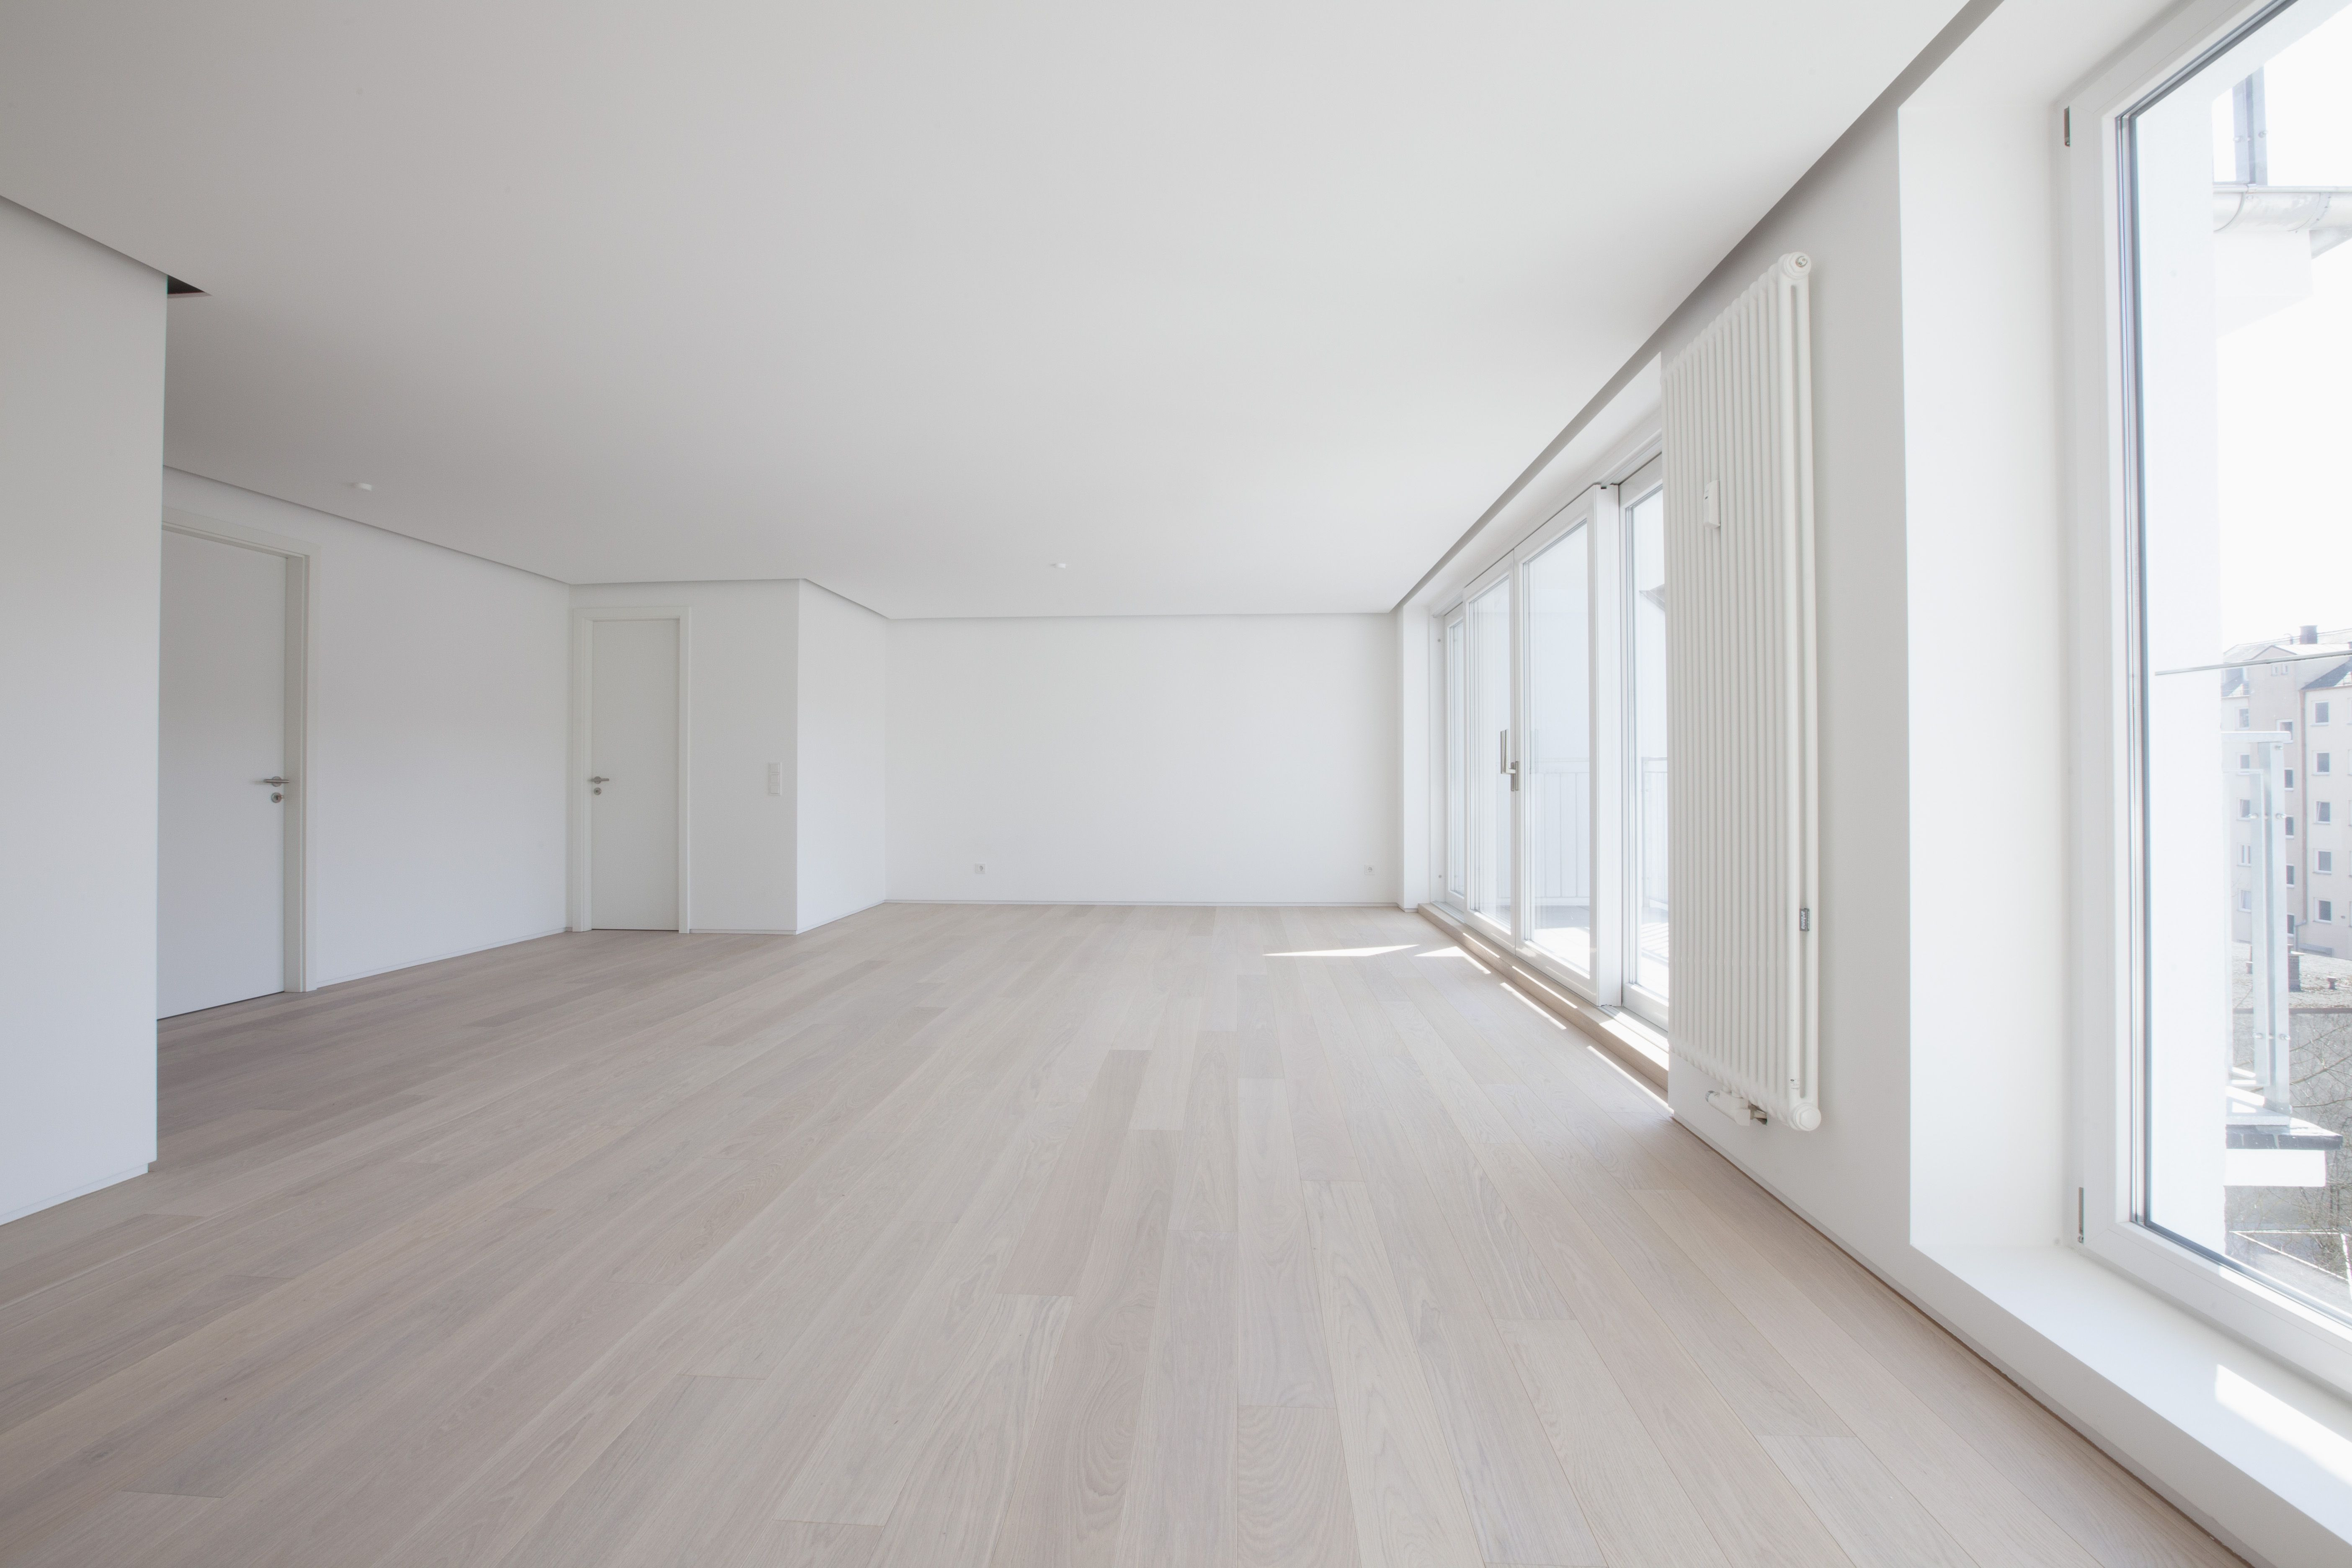 3 4 Unfinished Engineered Hardwood Flooring Of Basics Of Favorite Hybrid Engineered Wood Floors Throughout Empty Living Room In Modern Apartment 578189139 58866f903df78c2ccdecab05